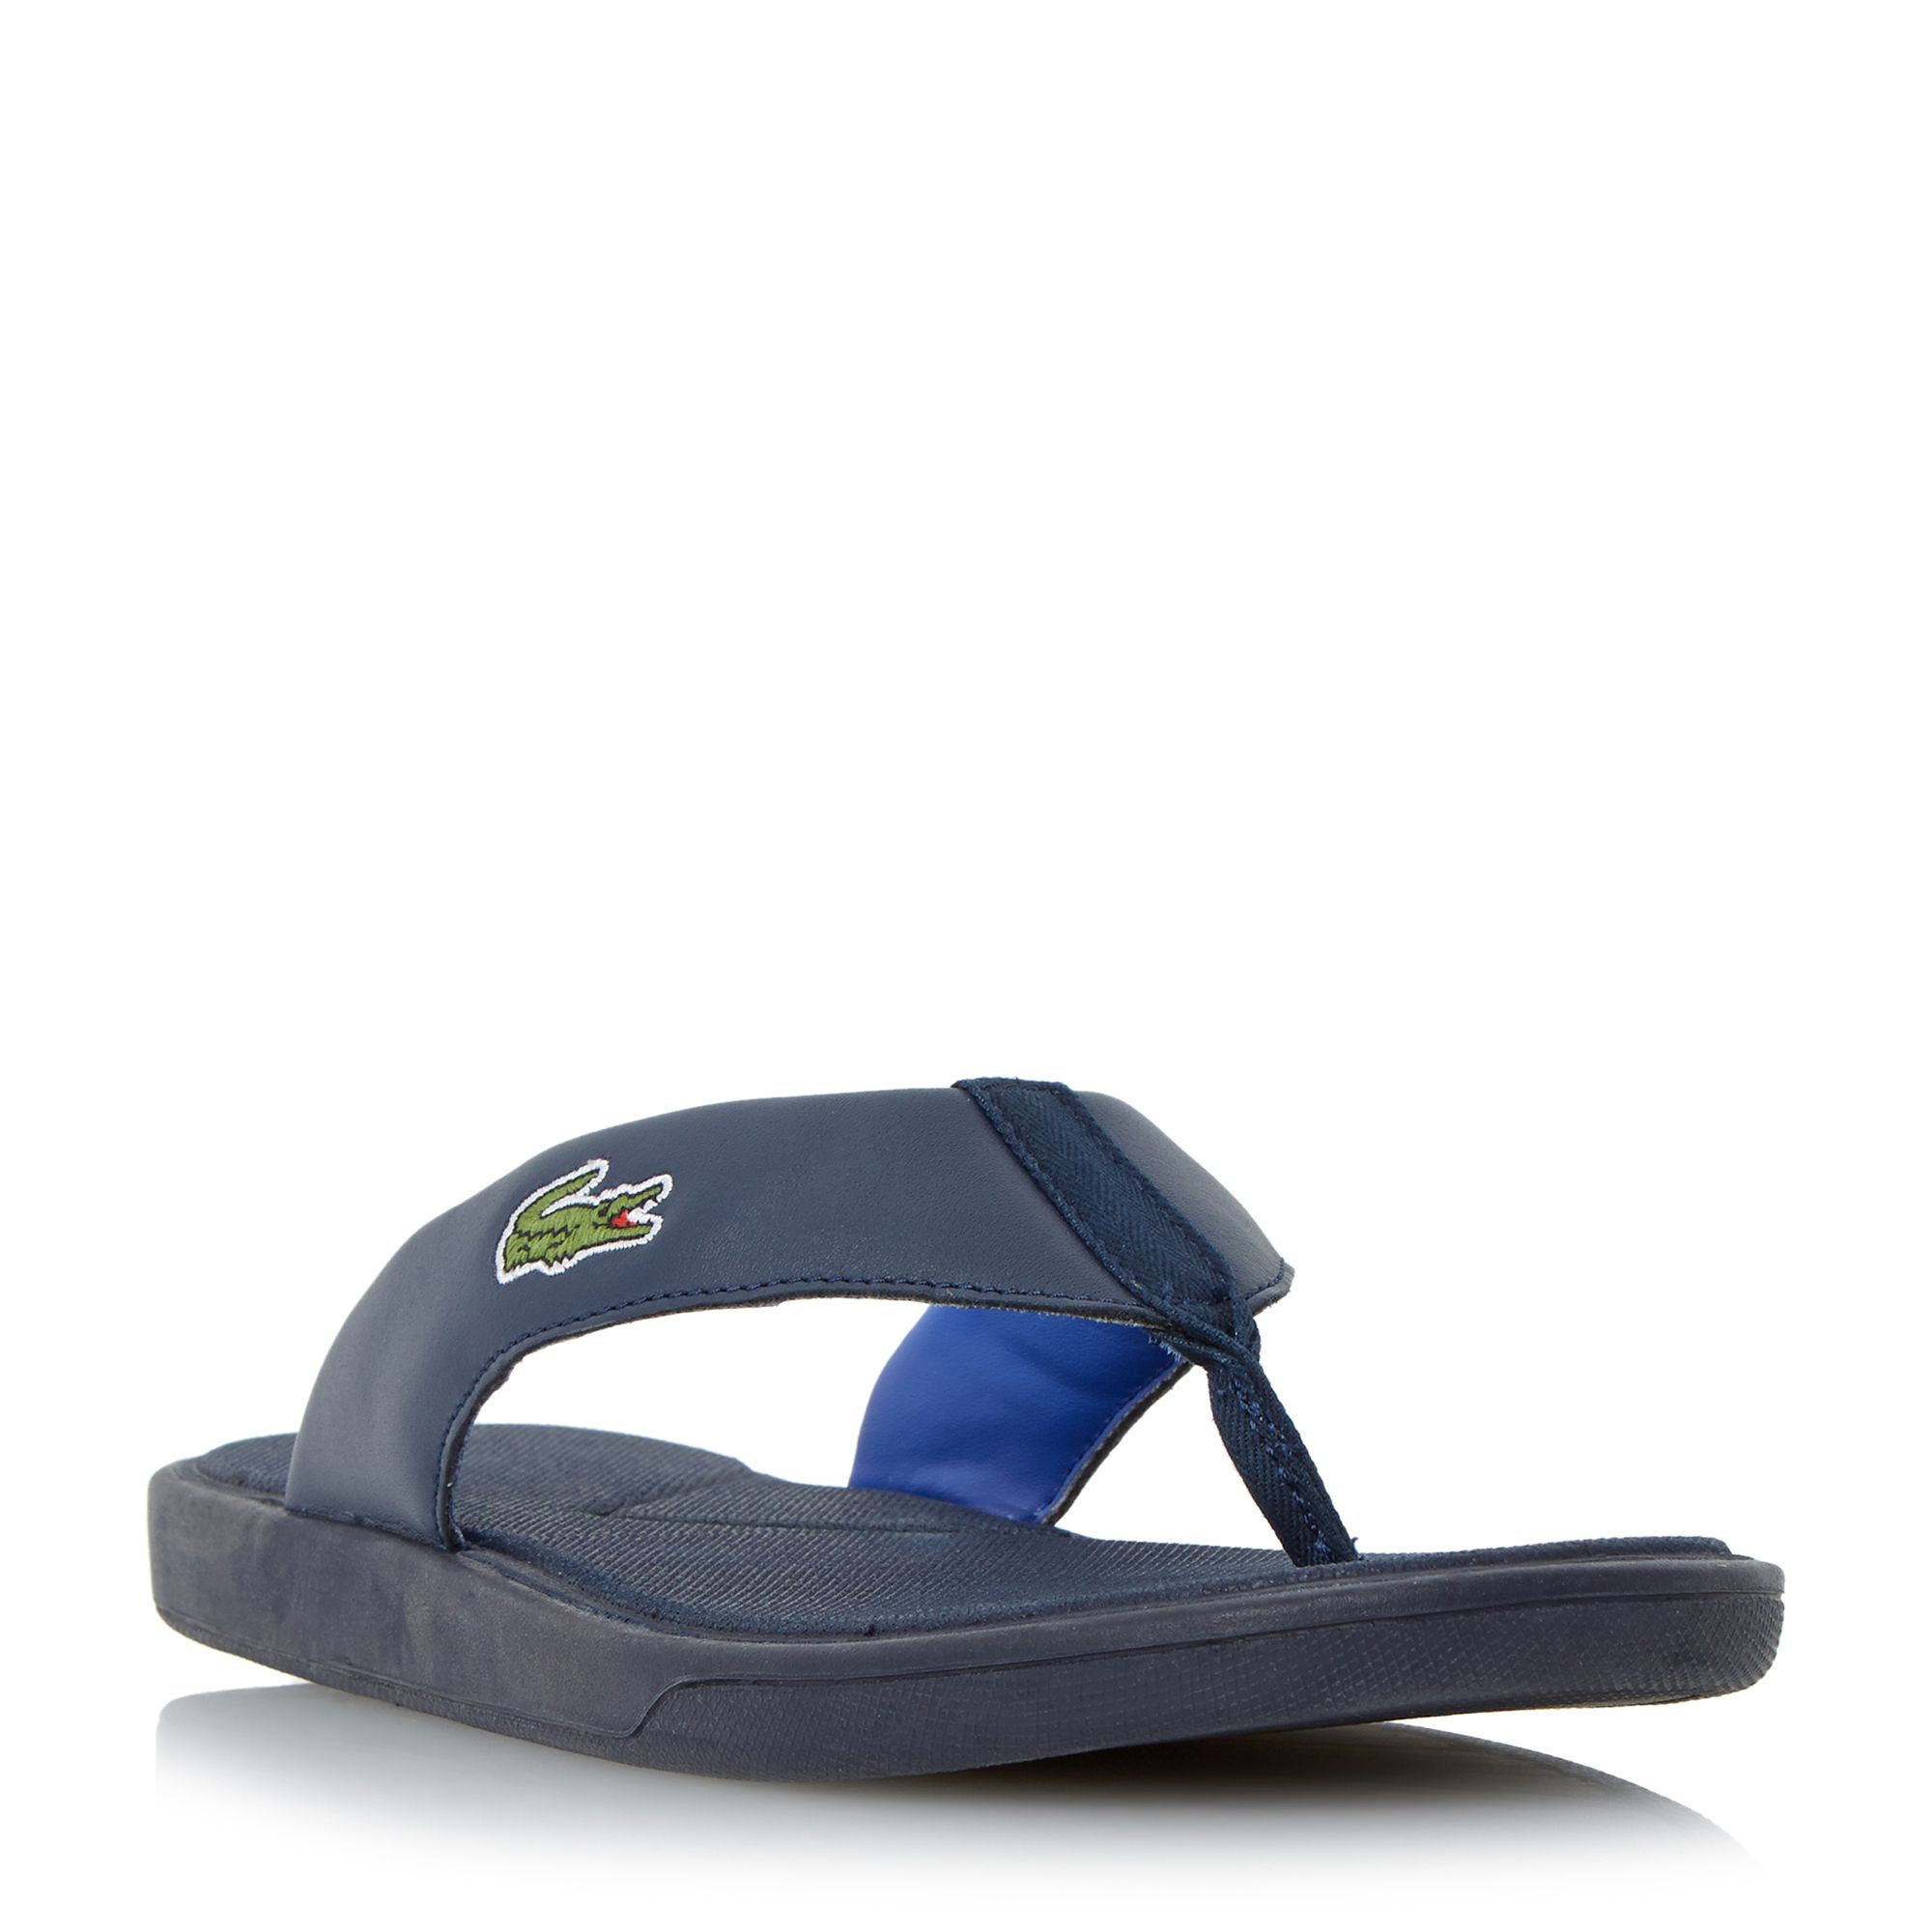 99d9a589ea245 Mens Lacoste L.30 Leather Toe Post Flip Flops Navy